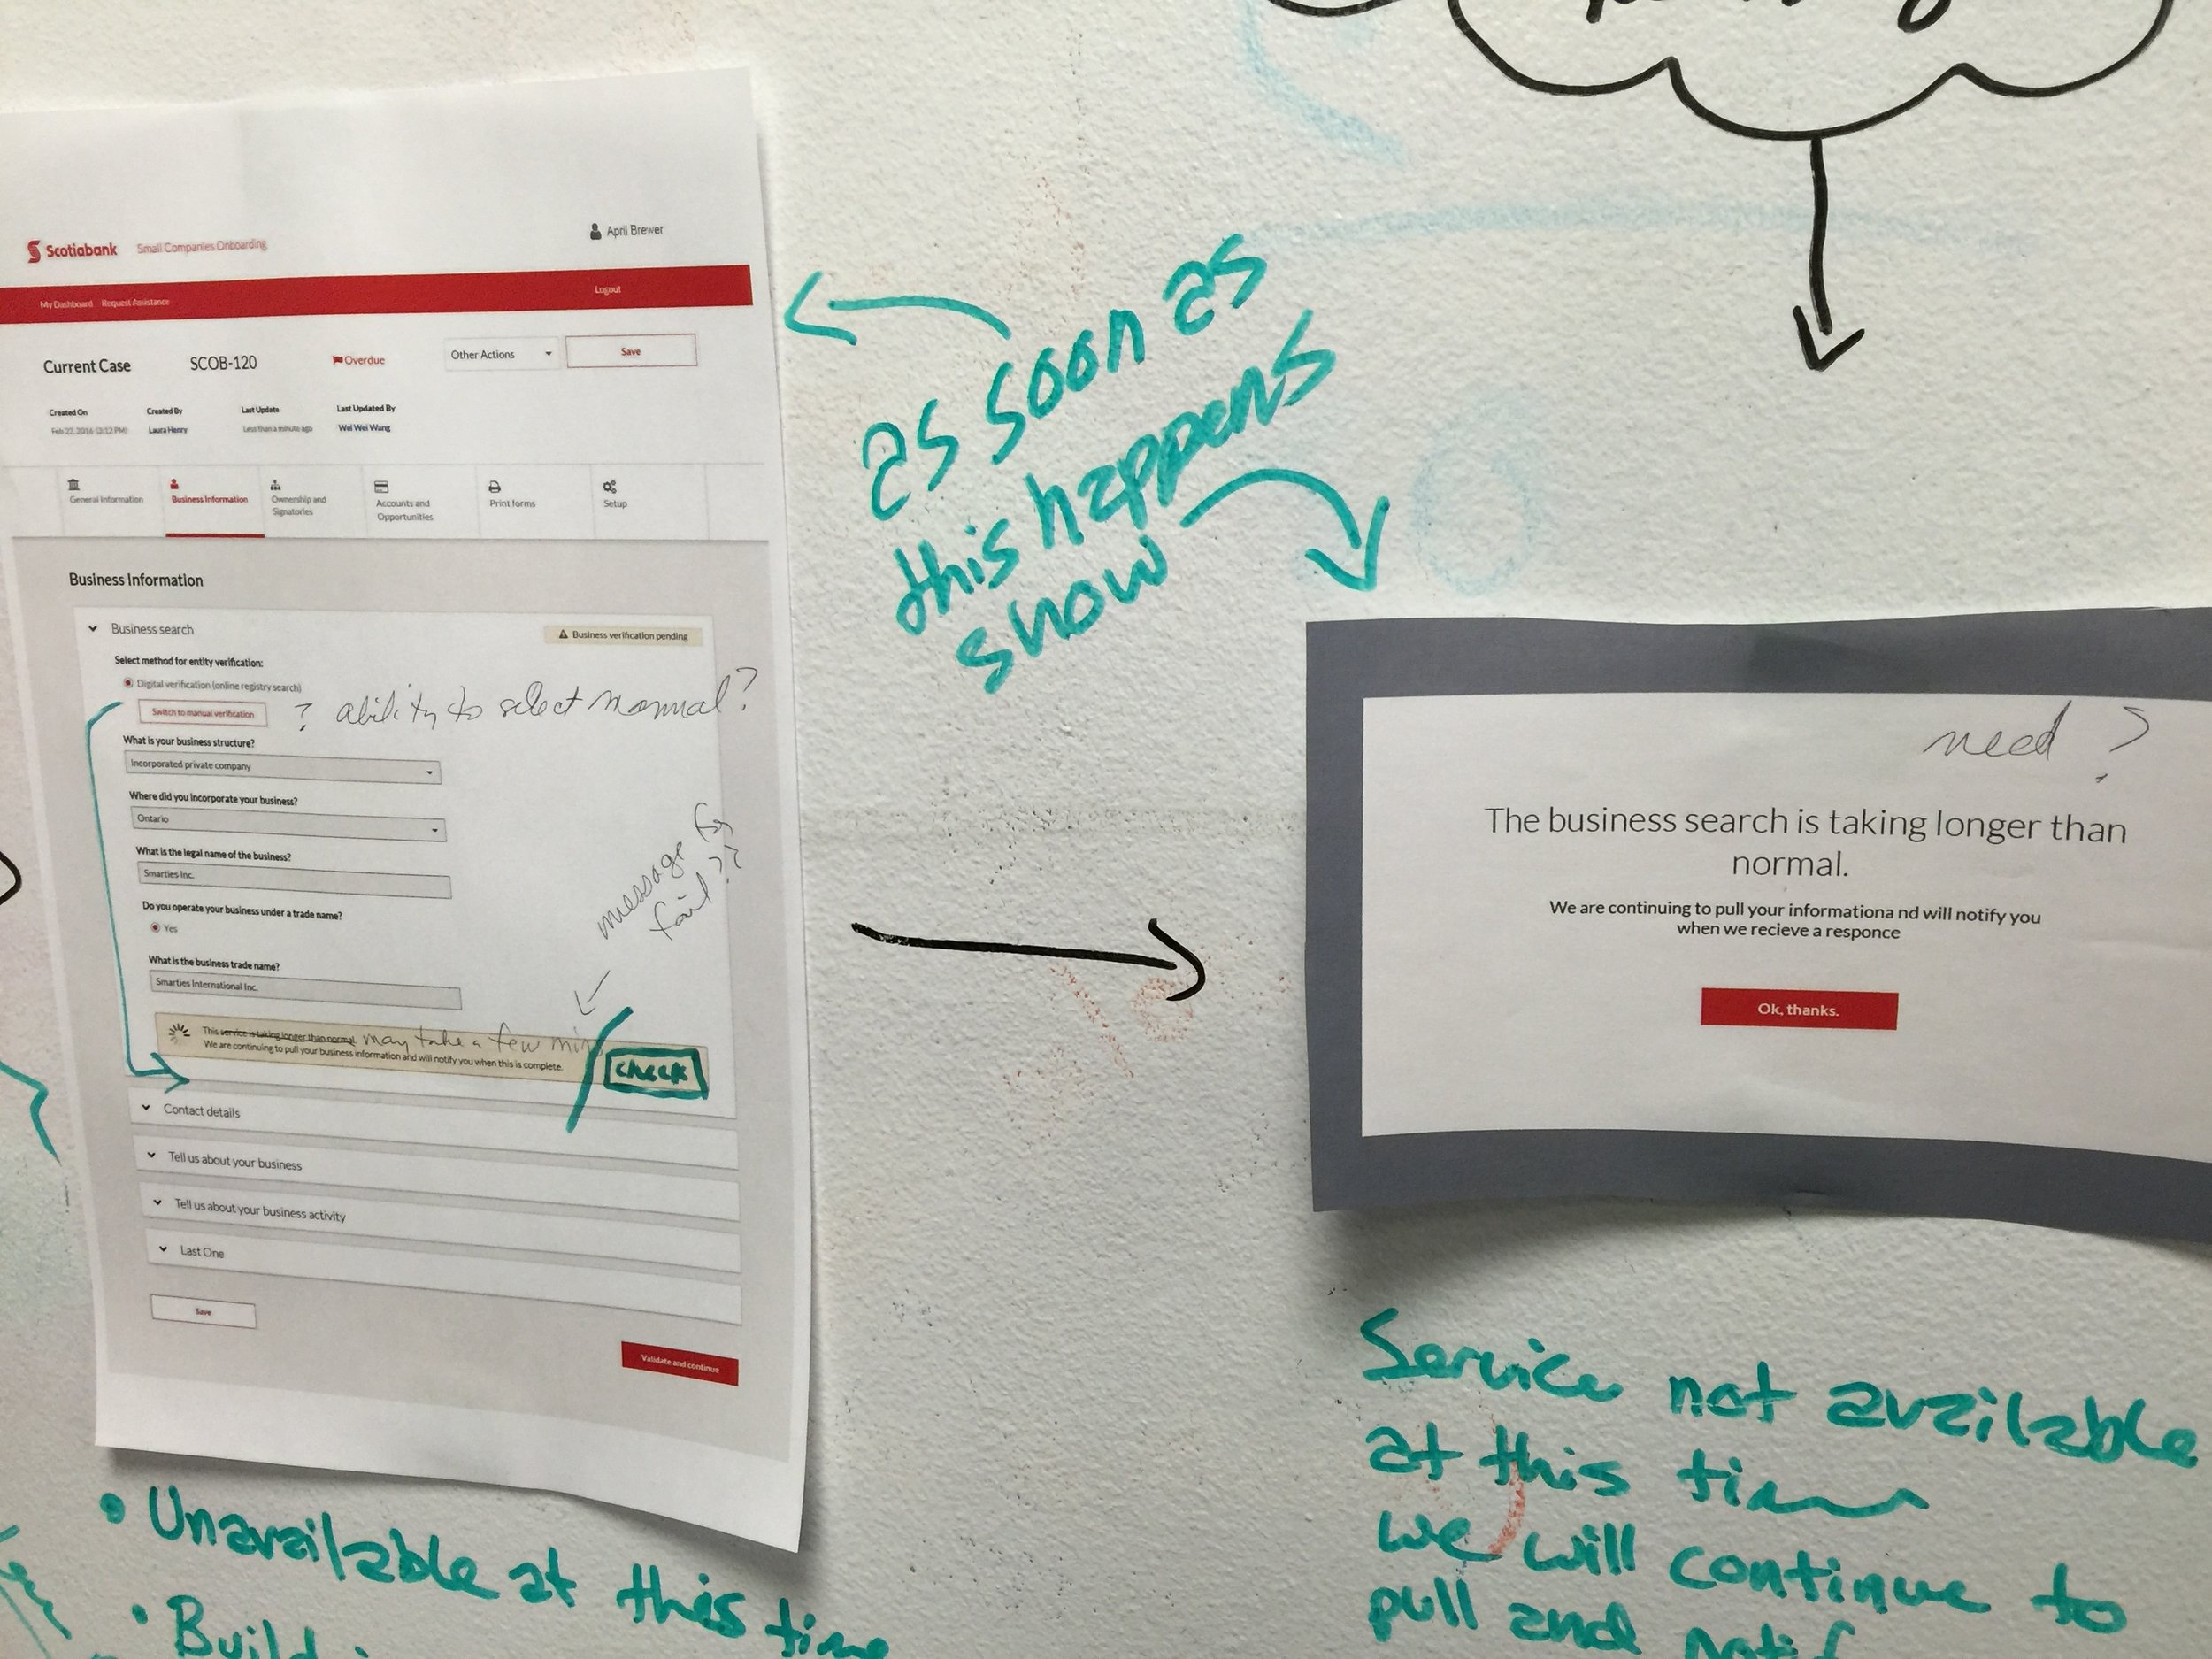 Collaboration - To ensure everyone has access to input, one of the techniques I use is to display the work on a whiteboard and open it up for all stakeholders to understand, influence and contribute.